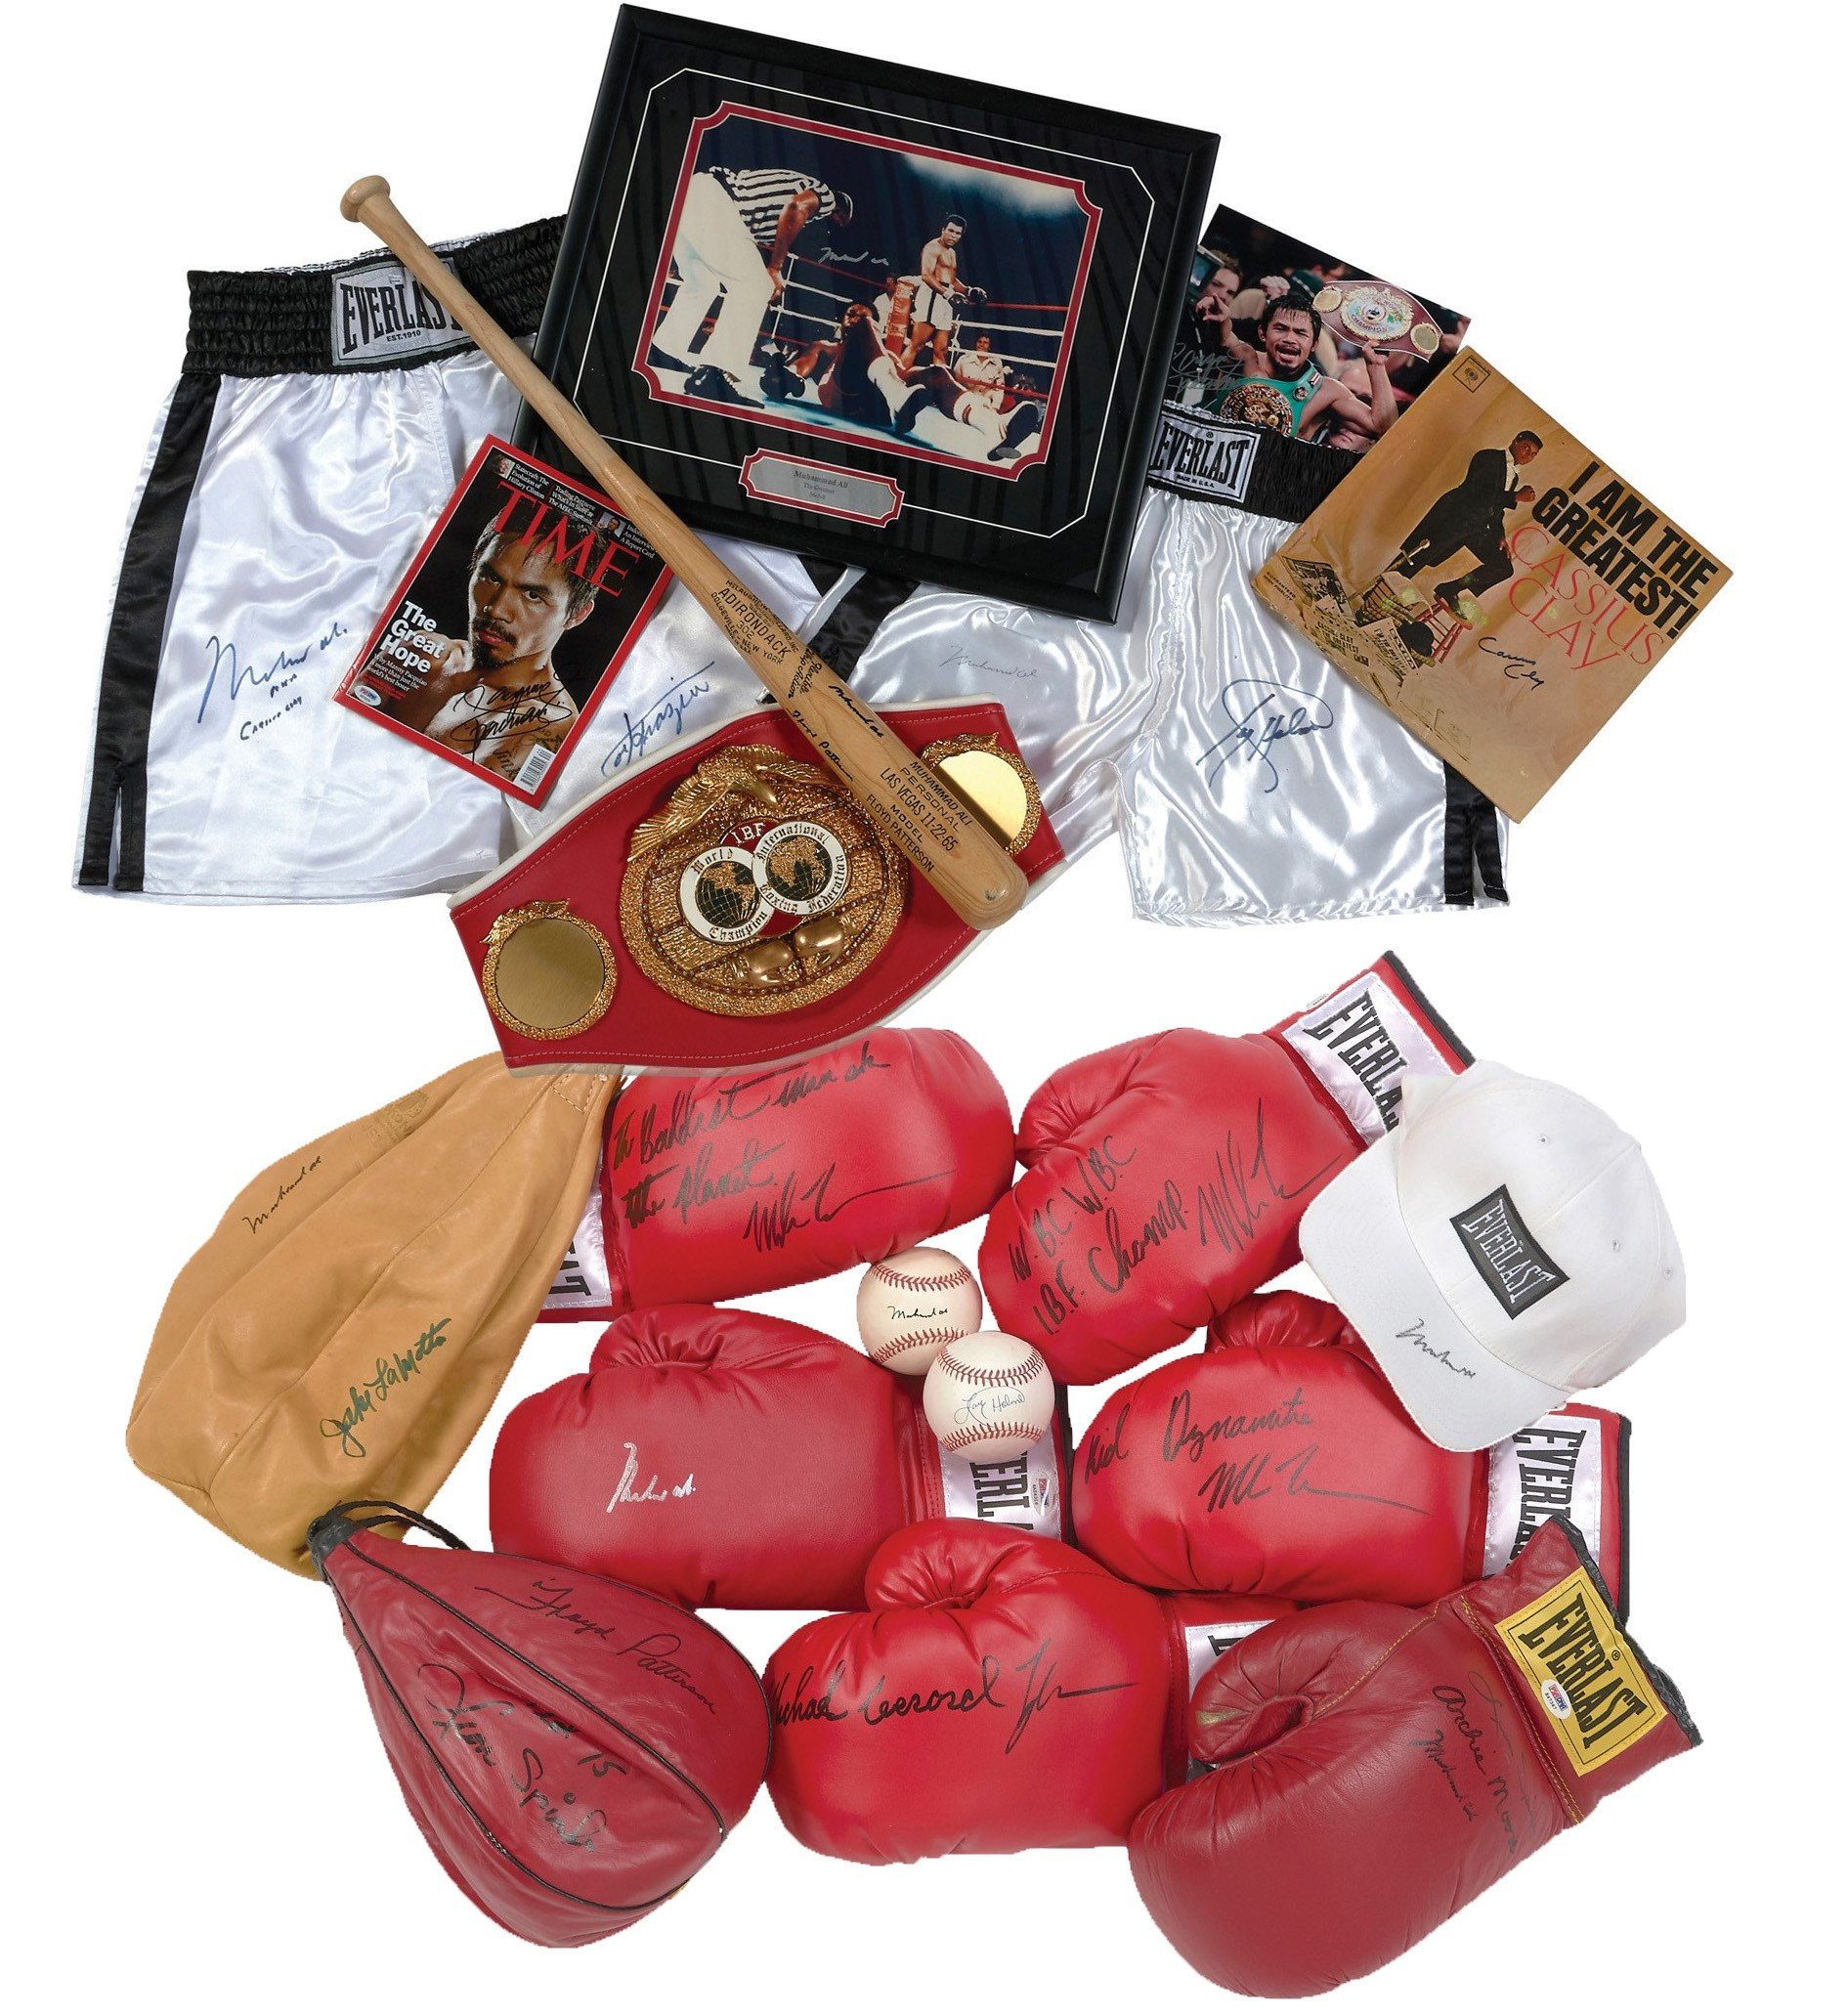 Muhammad Ali & Boxing Legends Autograph Collection (19)